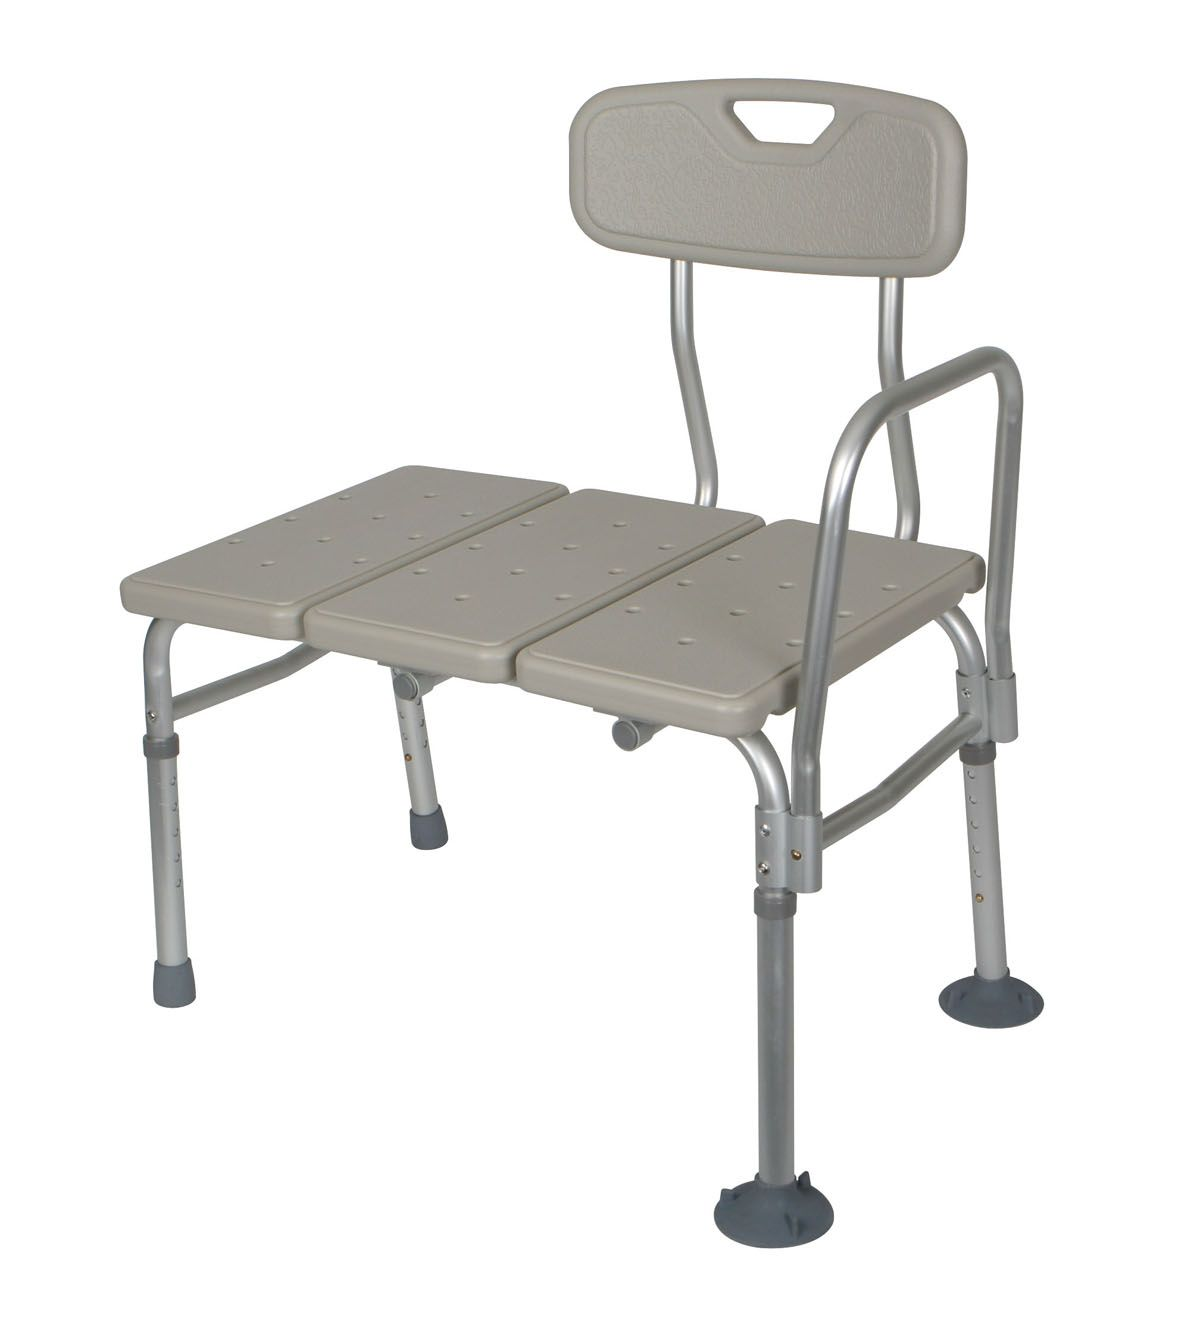 Brilliant Medline Unpadded Transfer Bench Bath Un Padded 300 Lb Cap Box Of 2 Model G98308A Gmtry Best Dining Table And Chair Ideas Images Gmtryco